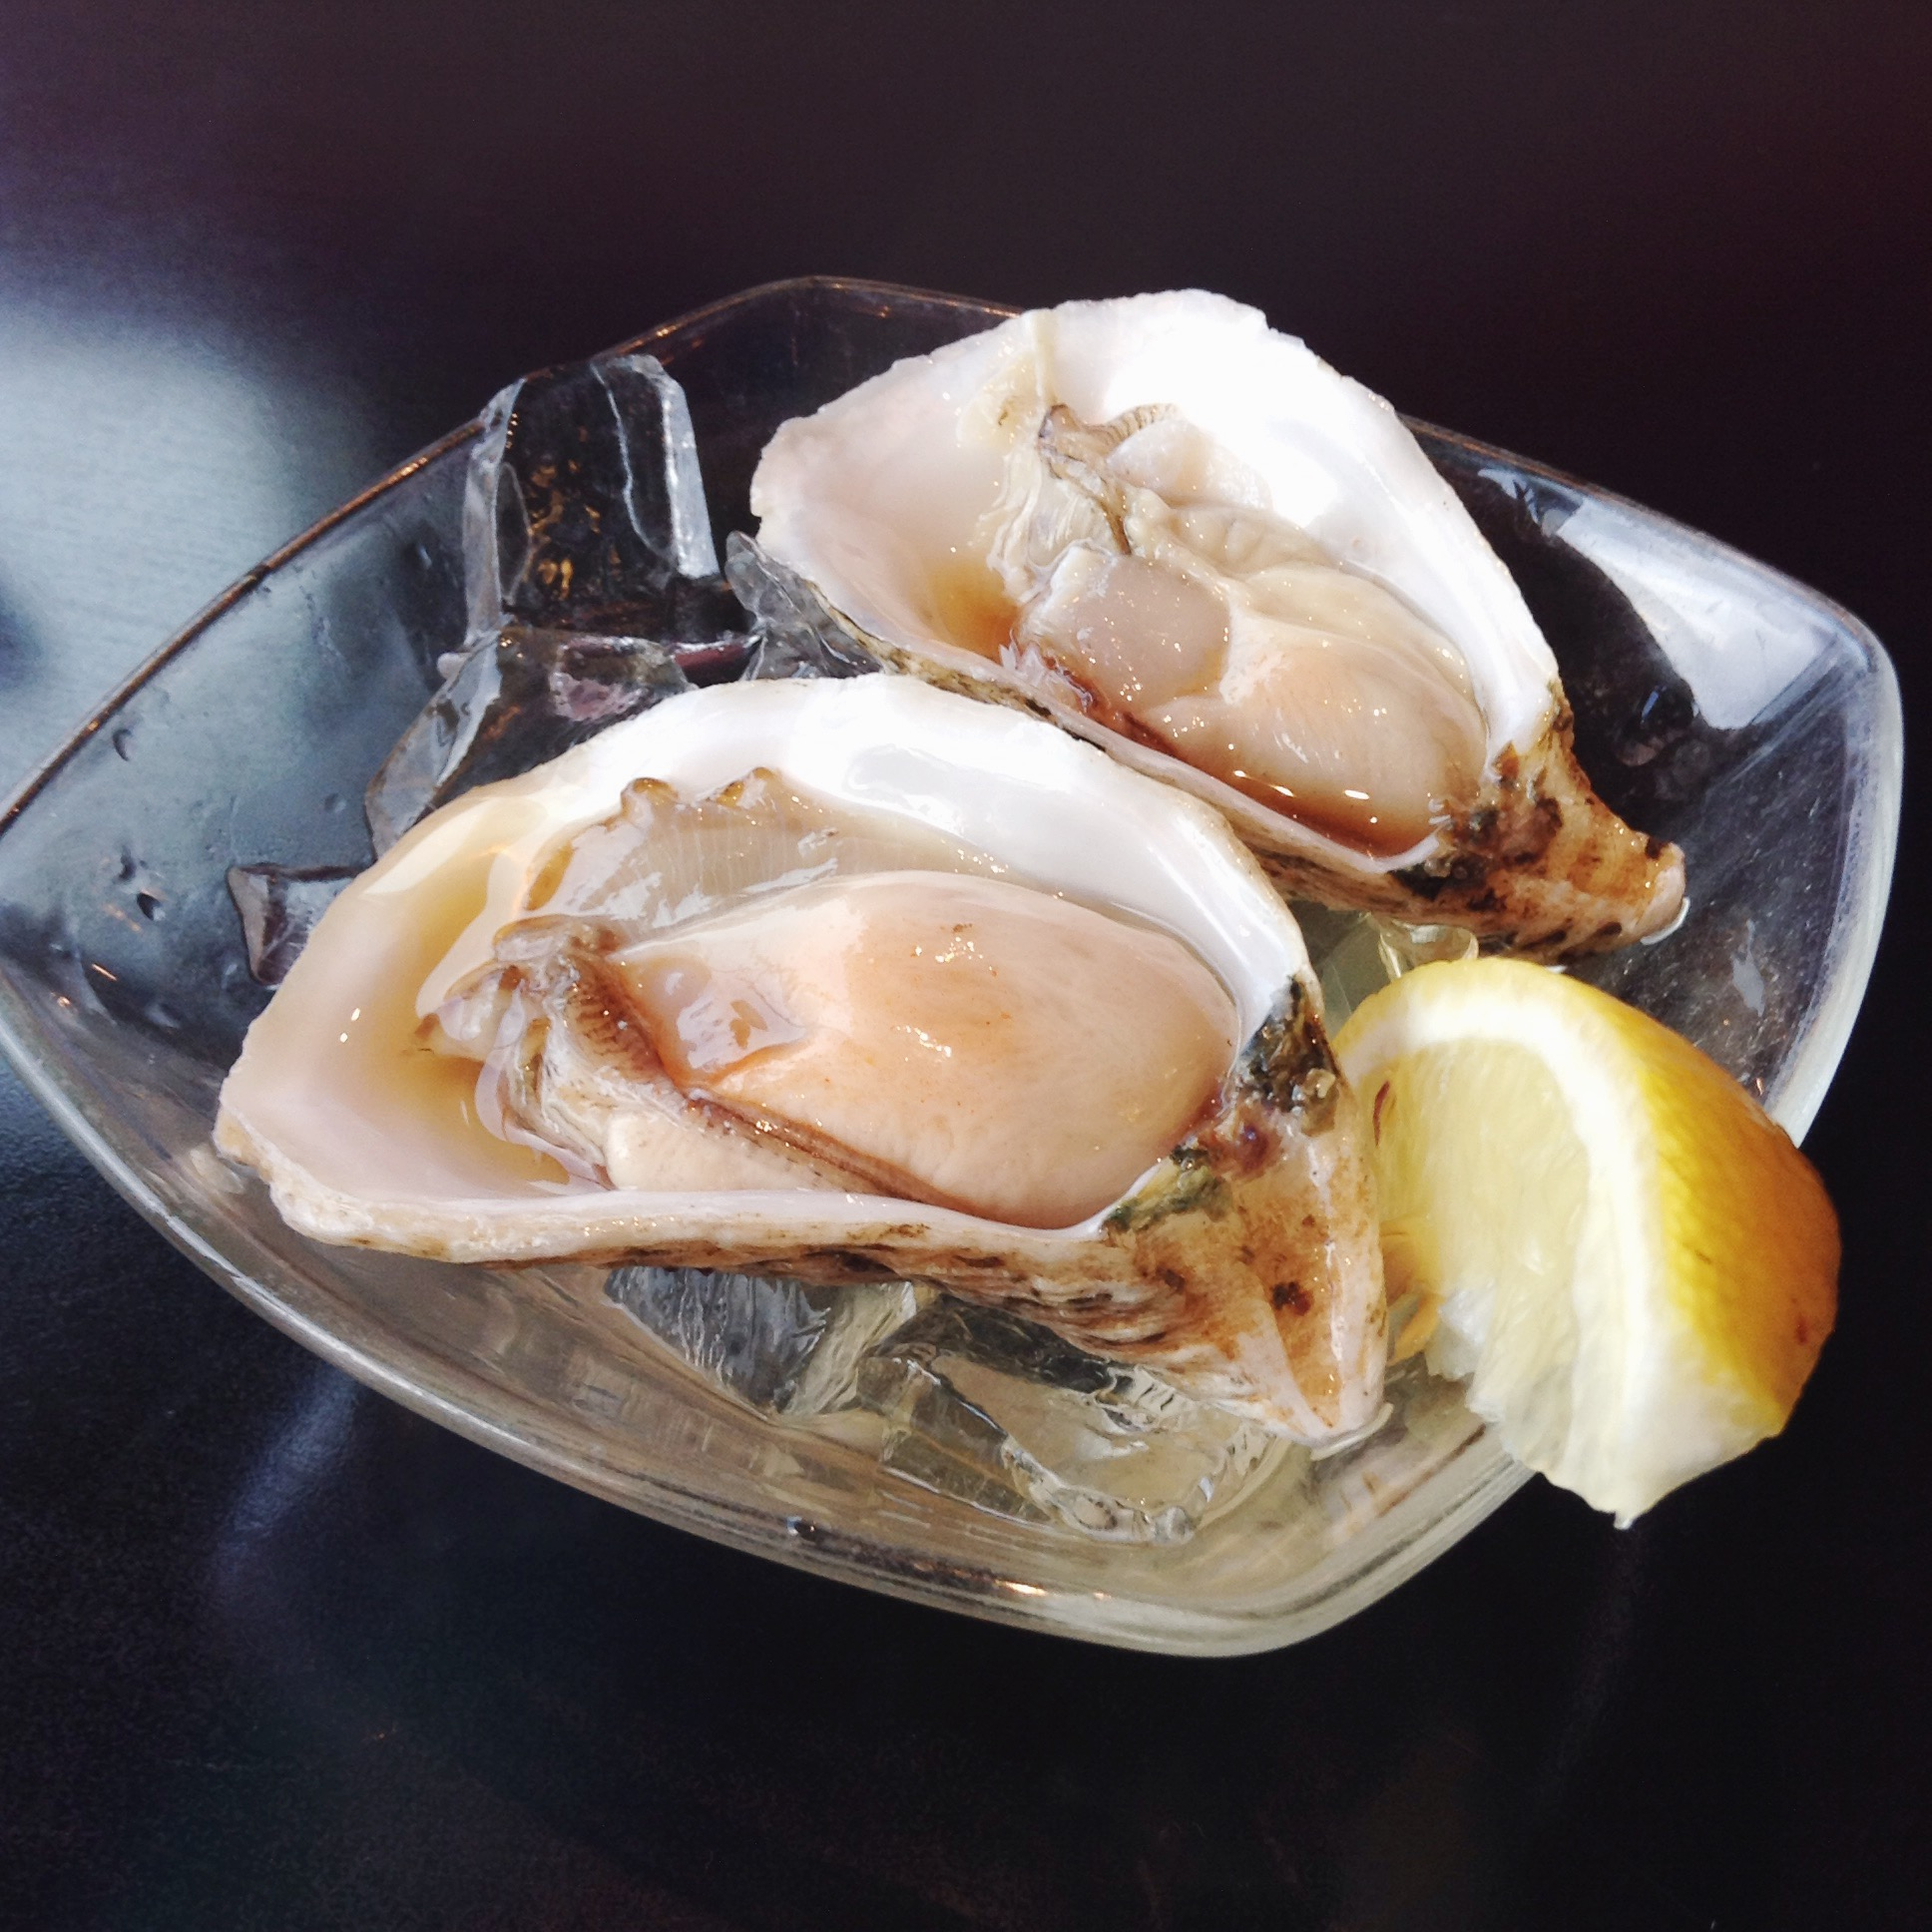 Uoshiki Sushi - Raw Oysters on the Rocks with House Special Sauce - 2 pieces per Person - HELLOTERI